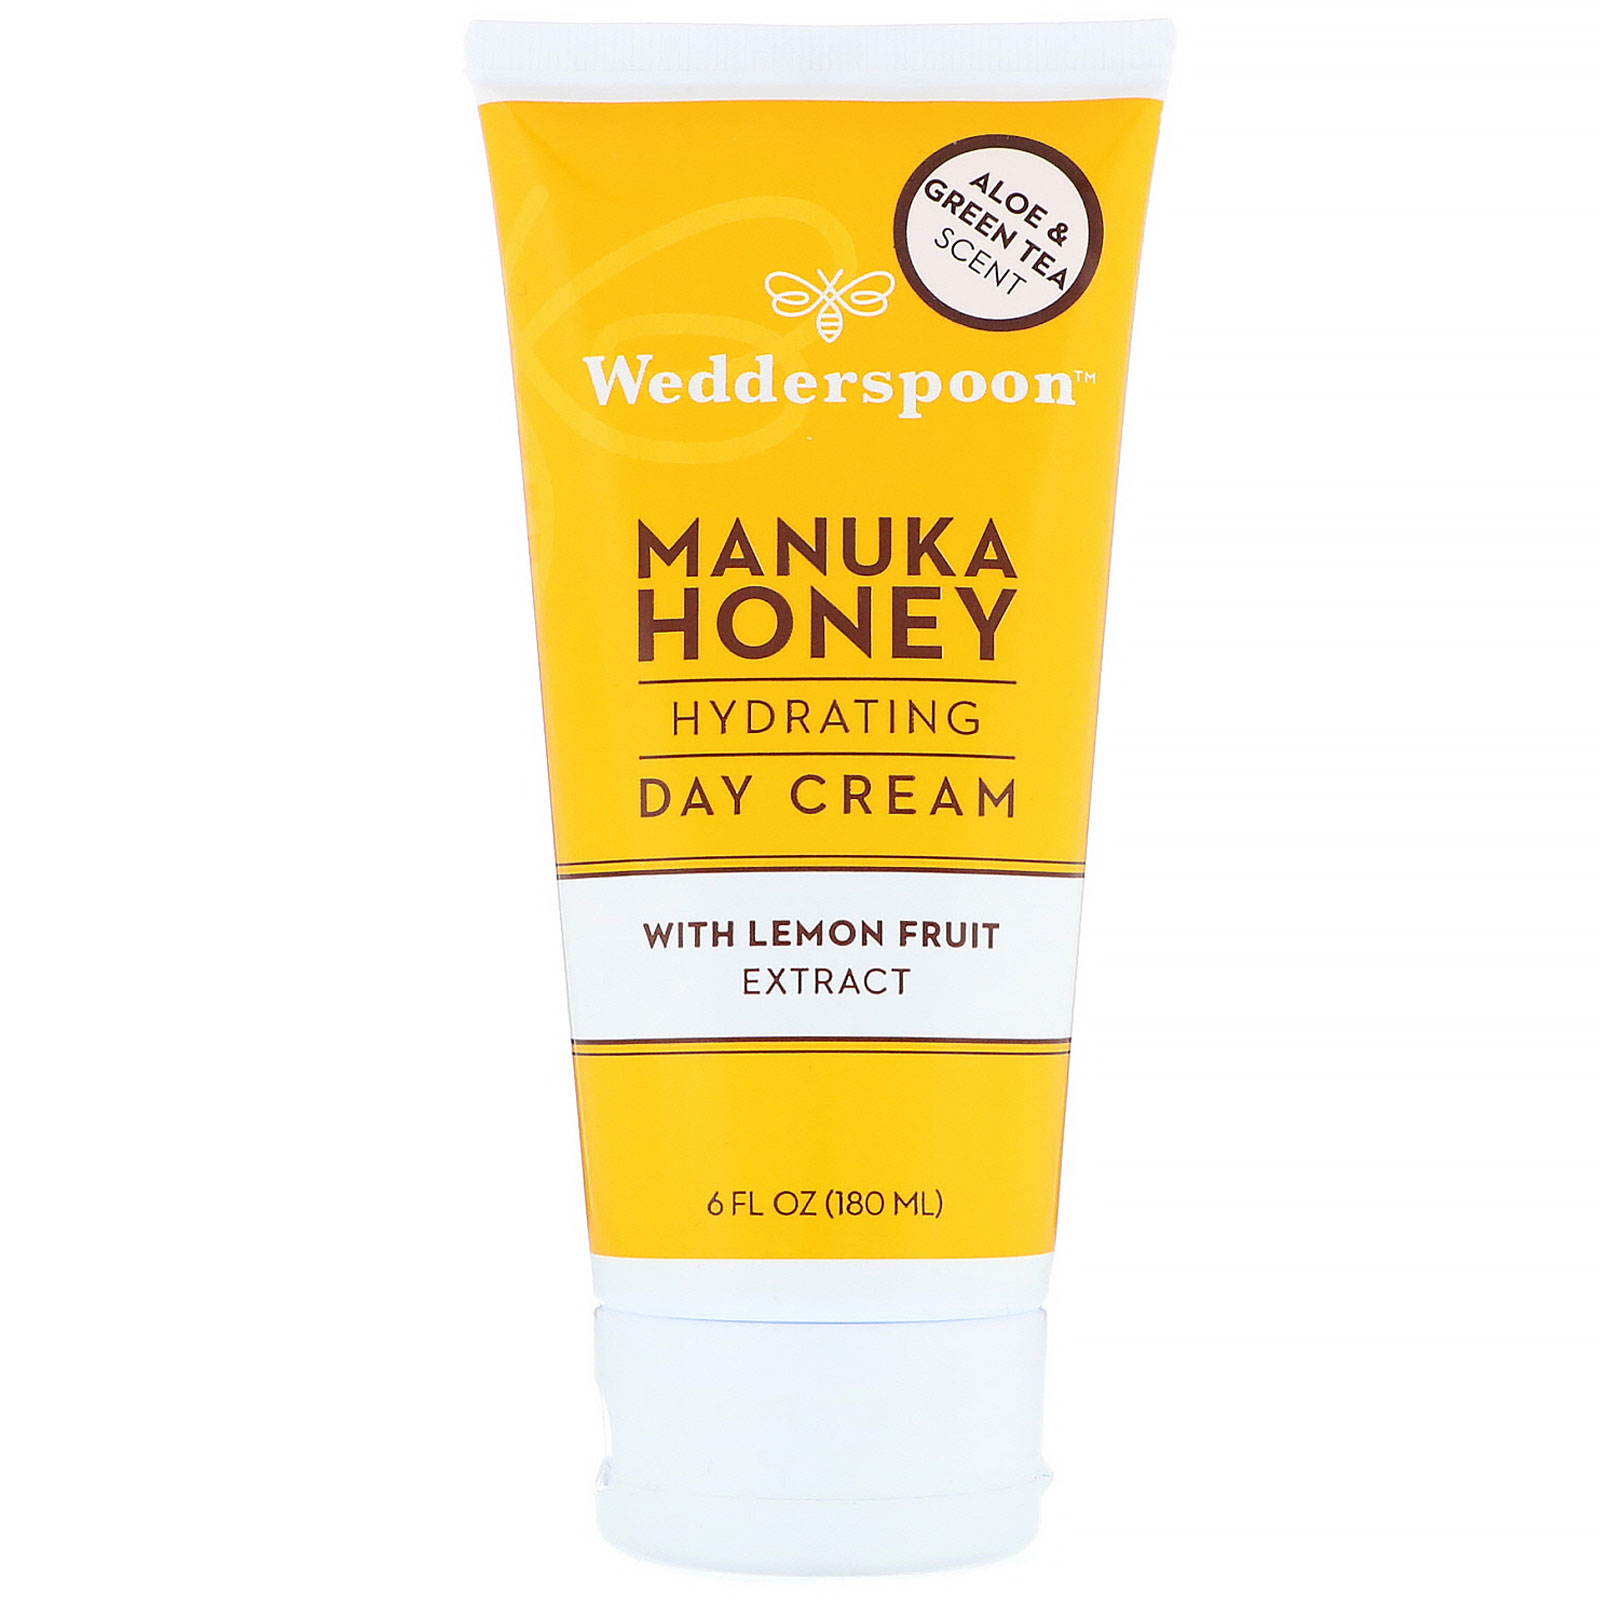 Wedderspoon, Manuka Honey, Hydrating Day Cream with Lemon Fruit Extract, Aloe & Green Tea Scent, 6 fl oz (180 ml)